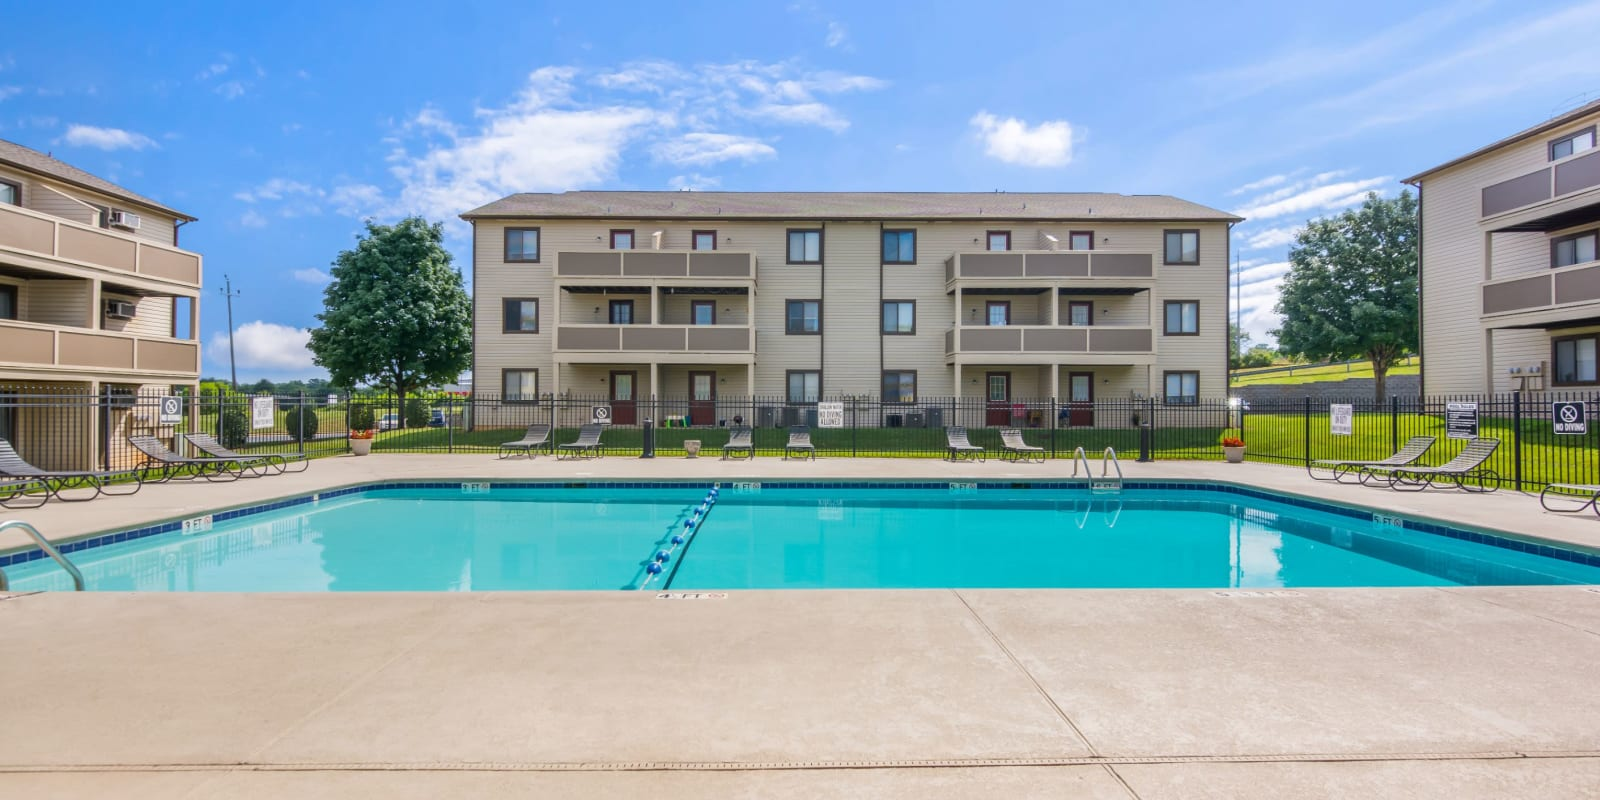 Large swimming pool with an expensive sundeck at Gable Oaks Apartment Homes in Rock Hill, South Carolina